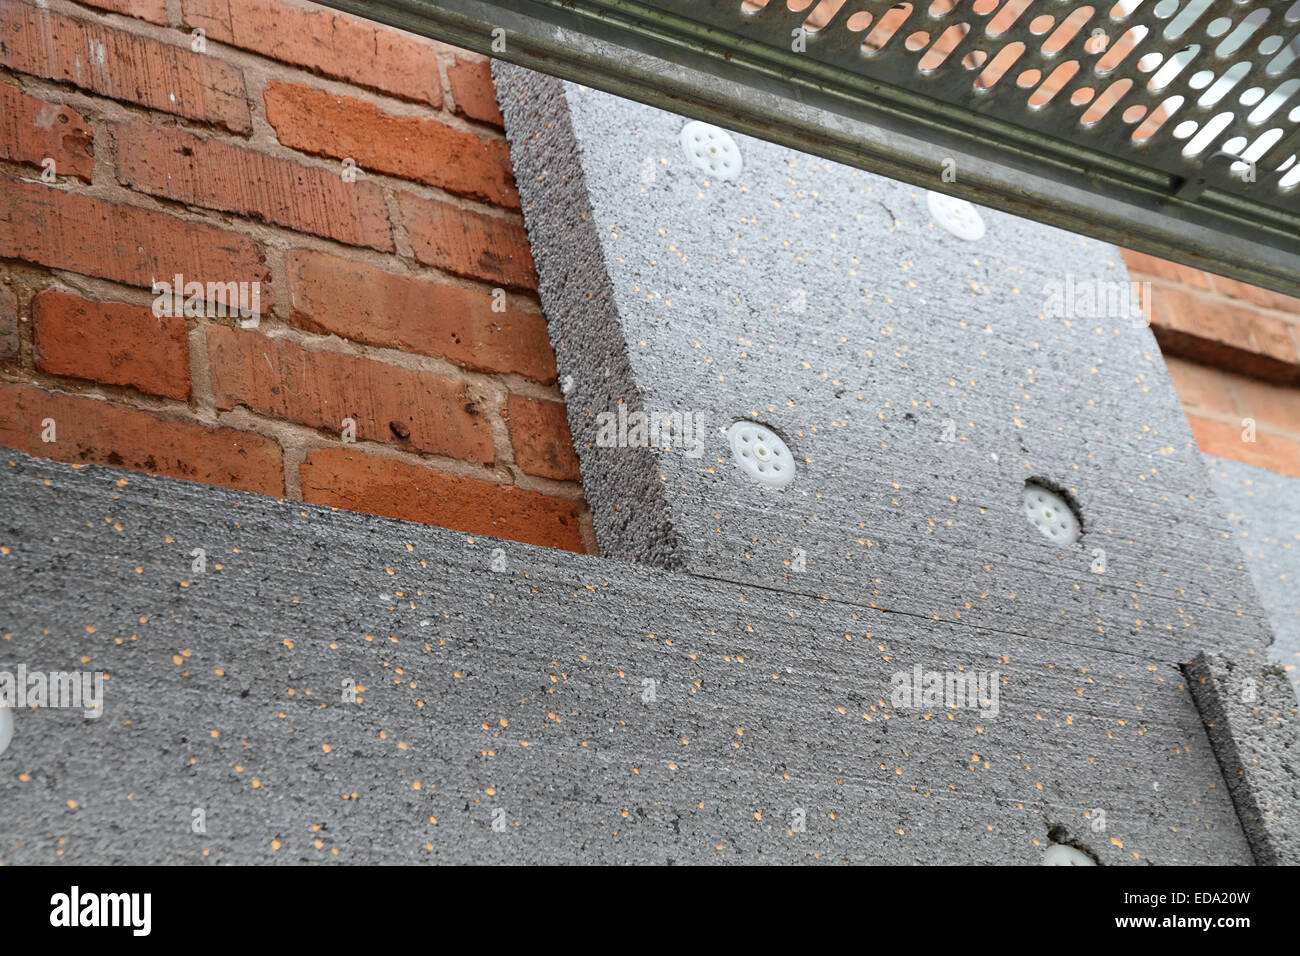 External Wall Insulation For Solid Wall Houses With No Cavity Stock Photo 77053113 Alamy